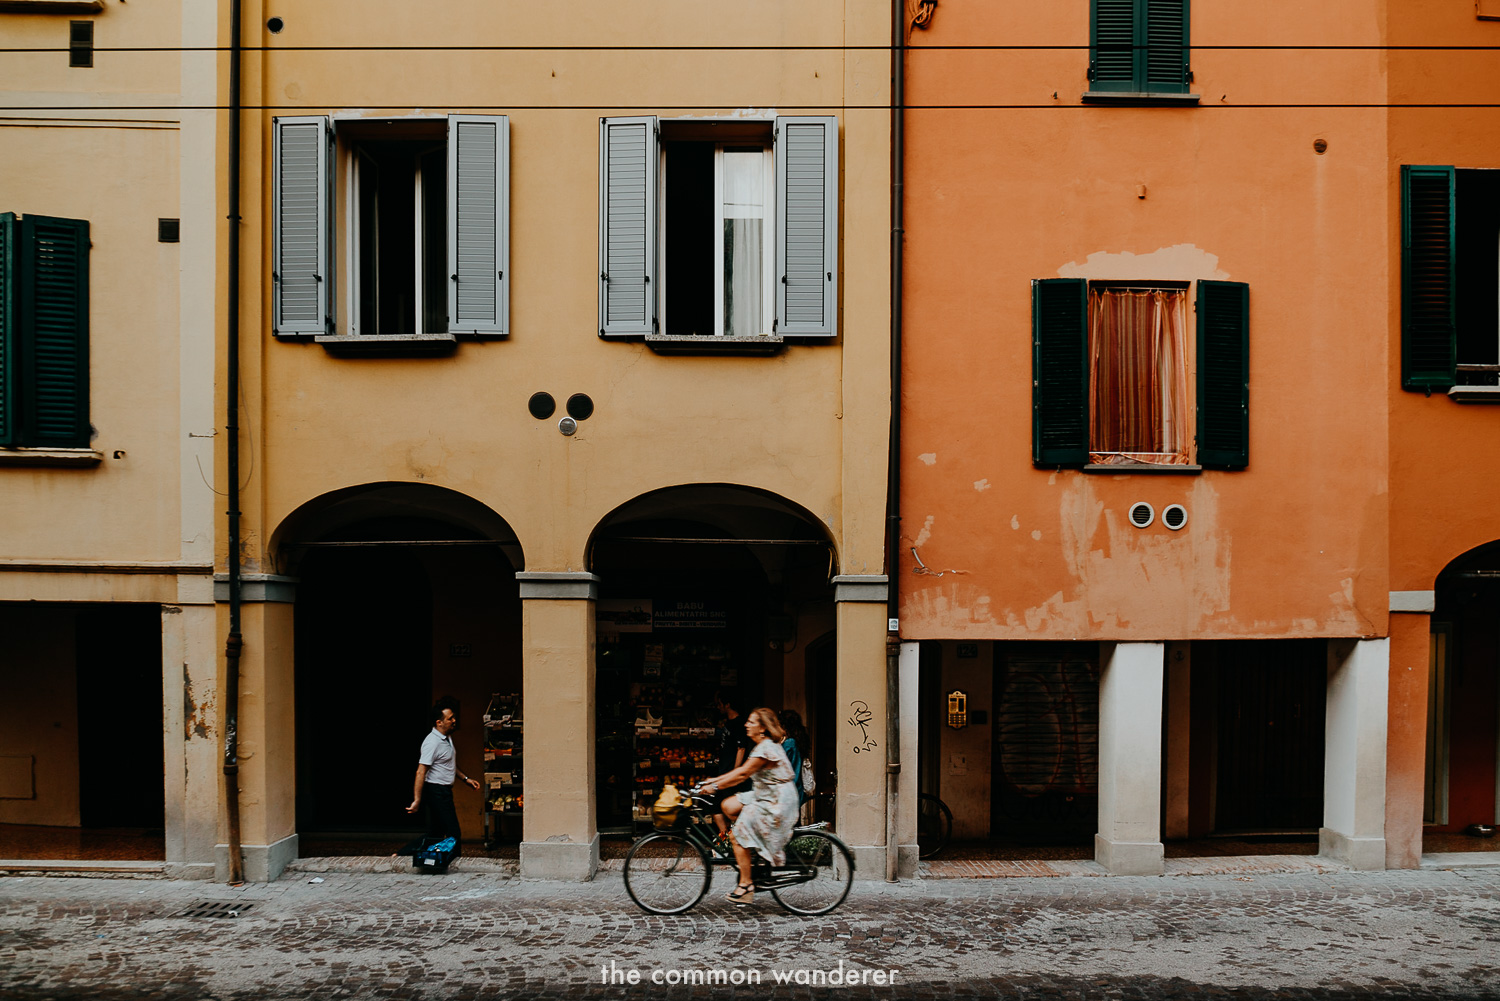 The best photos of Bologna - The Common Wanderer